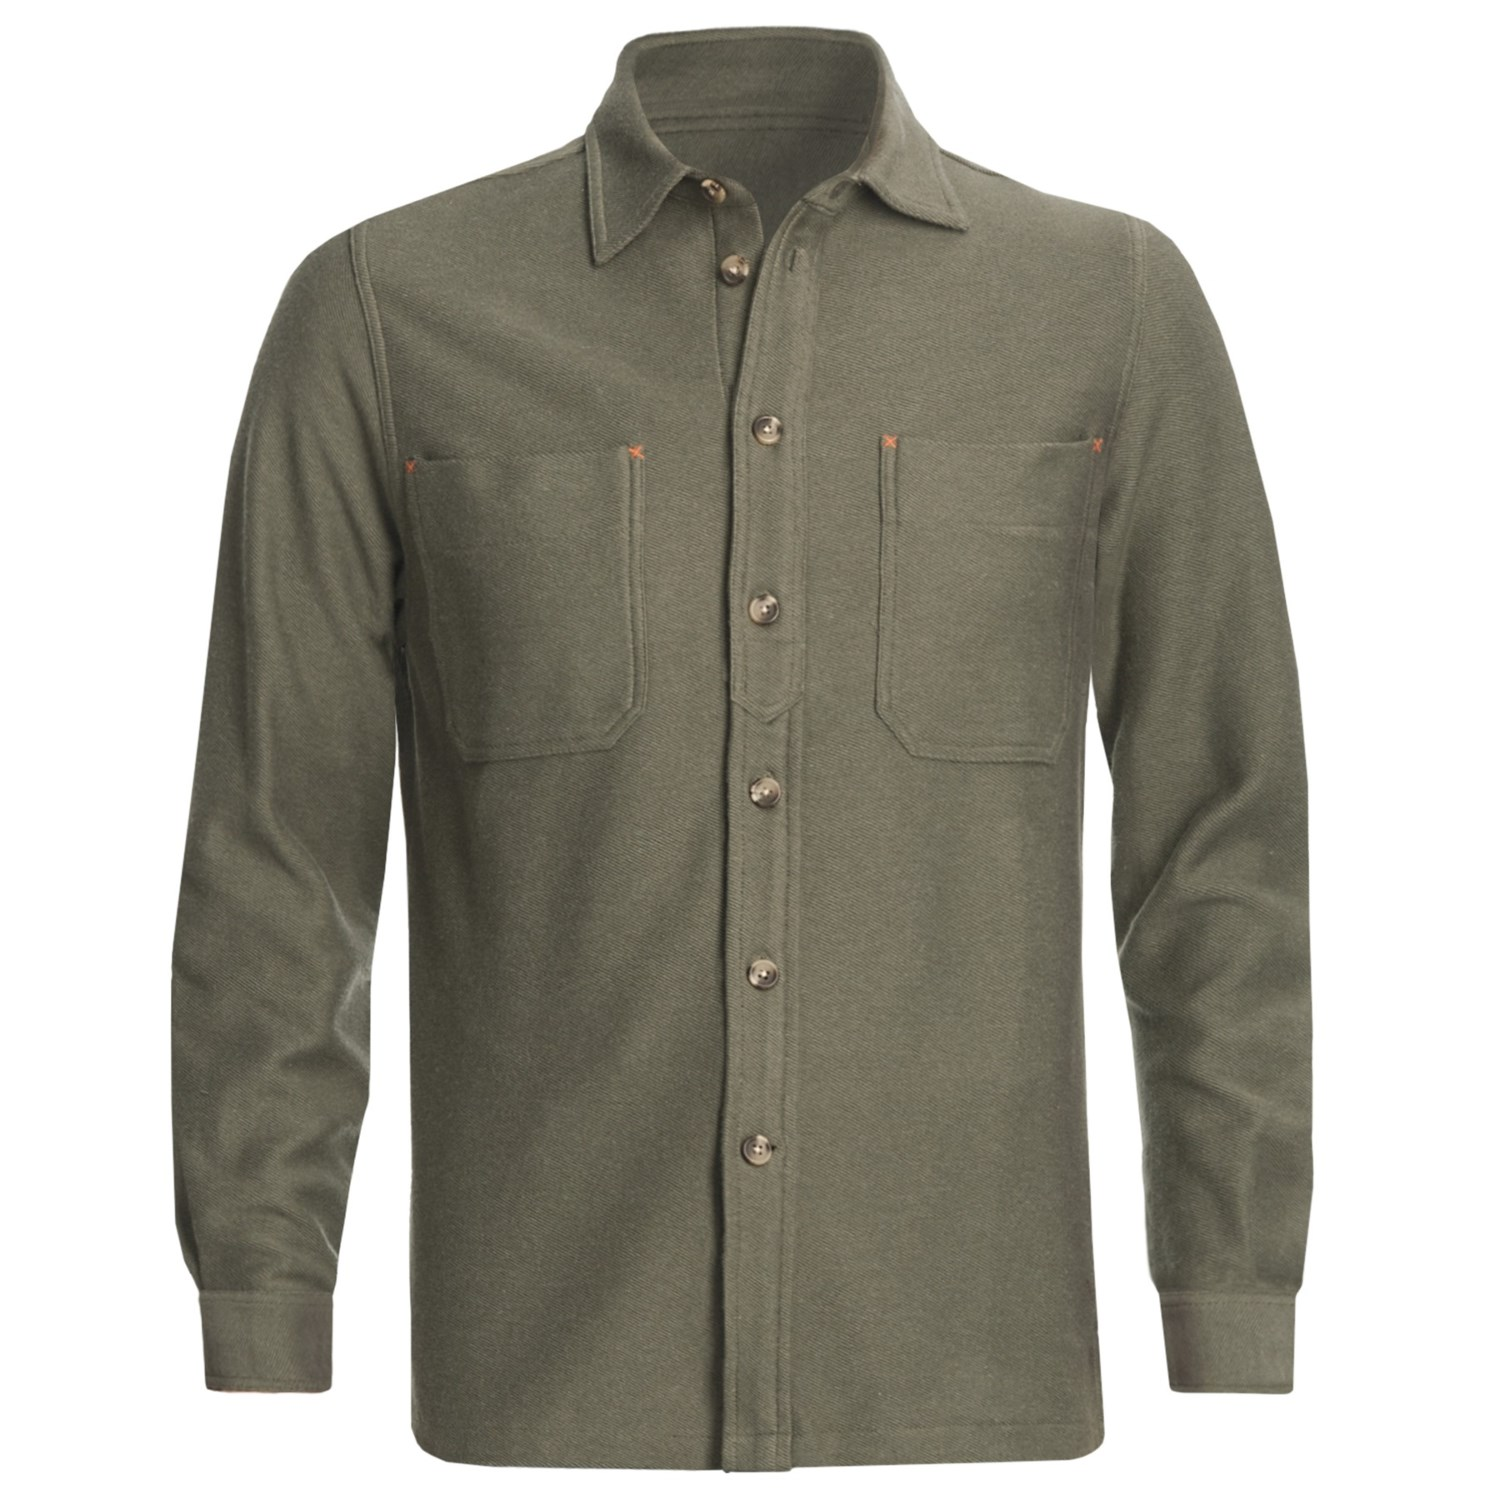 Our best selling long sleeve cotton work shirt for men looks great wash after wash. You cannot go wrong with this tough wrinkle resistant cotton work shirt by Red Kap. These shirts are built to maximize comfort, ease of wear, durability, and color retention/5(77).